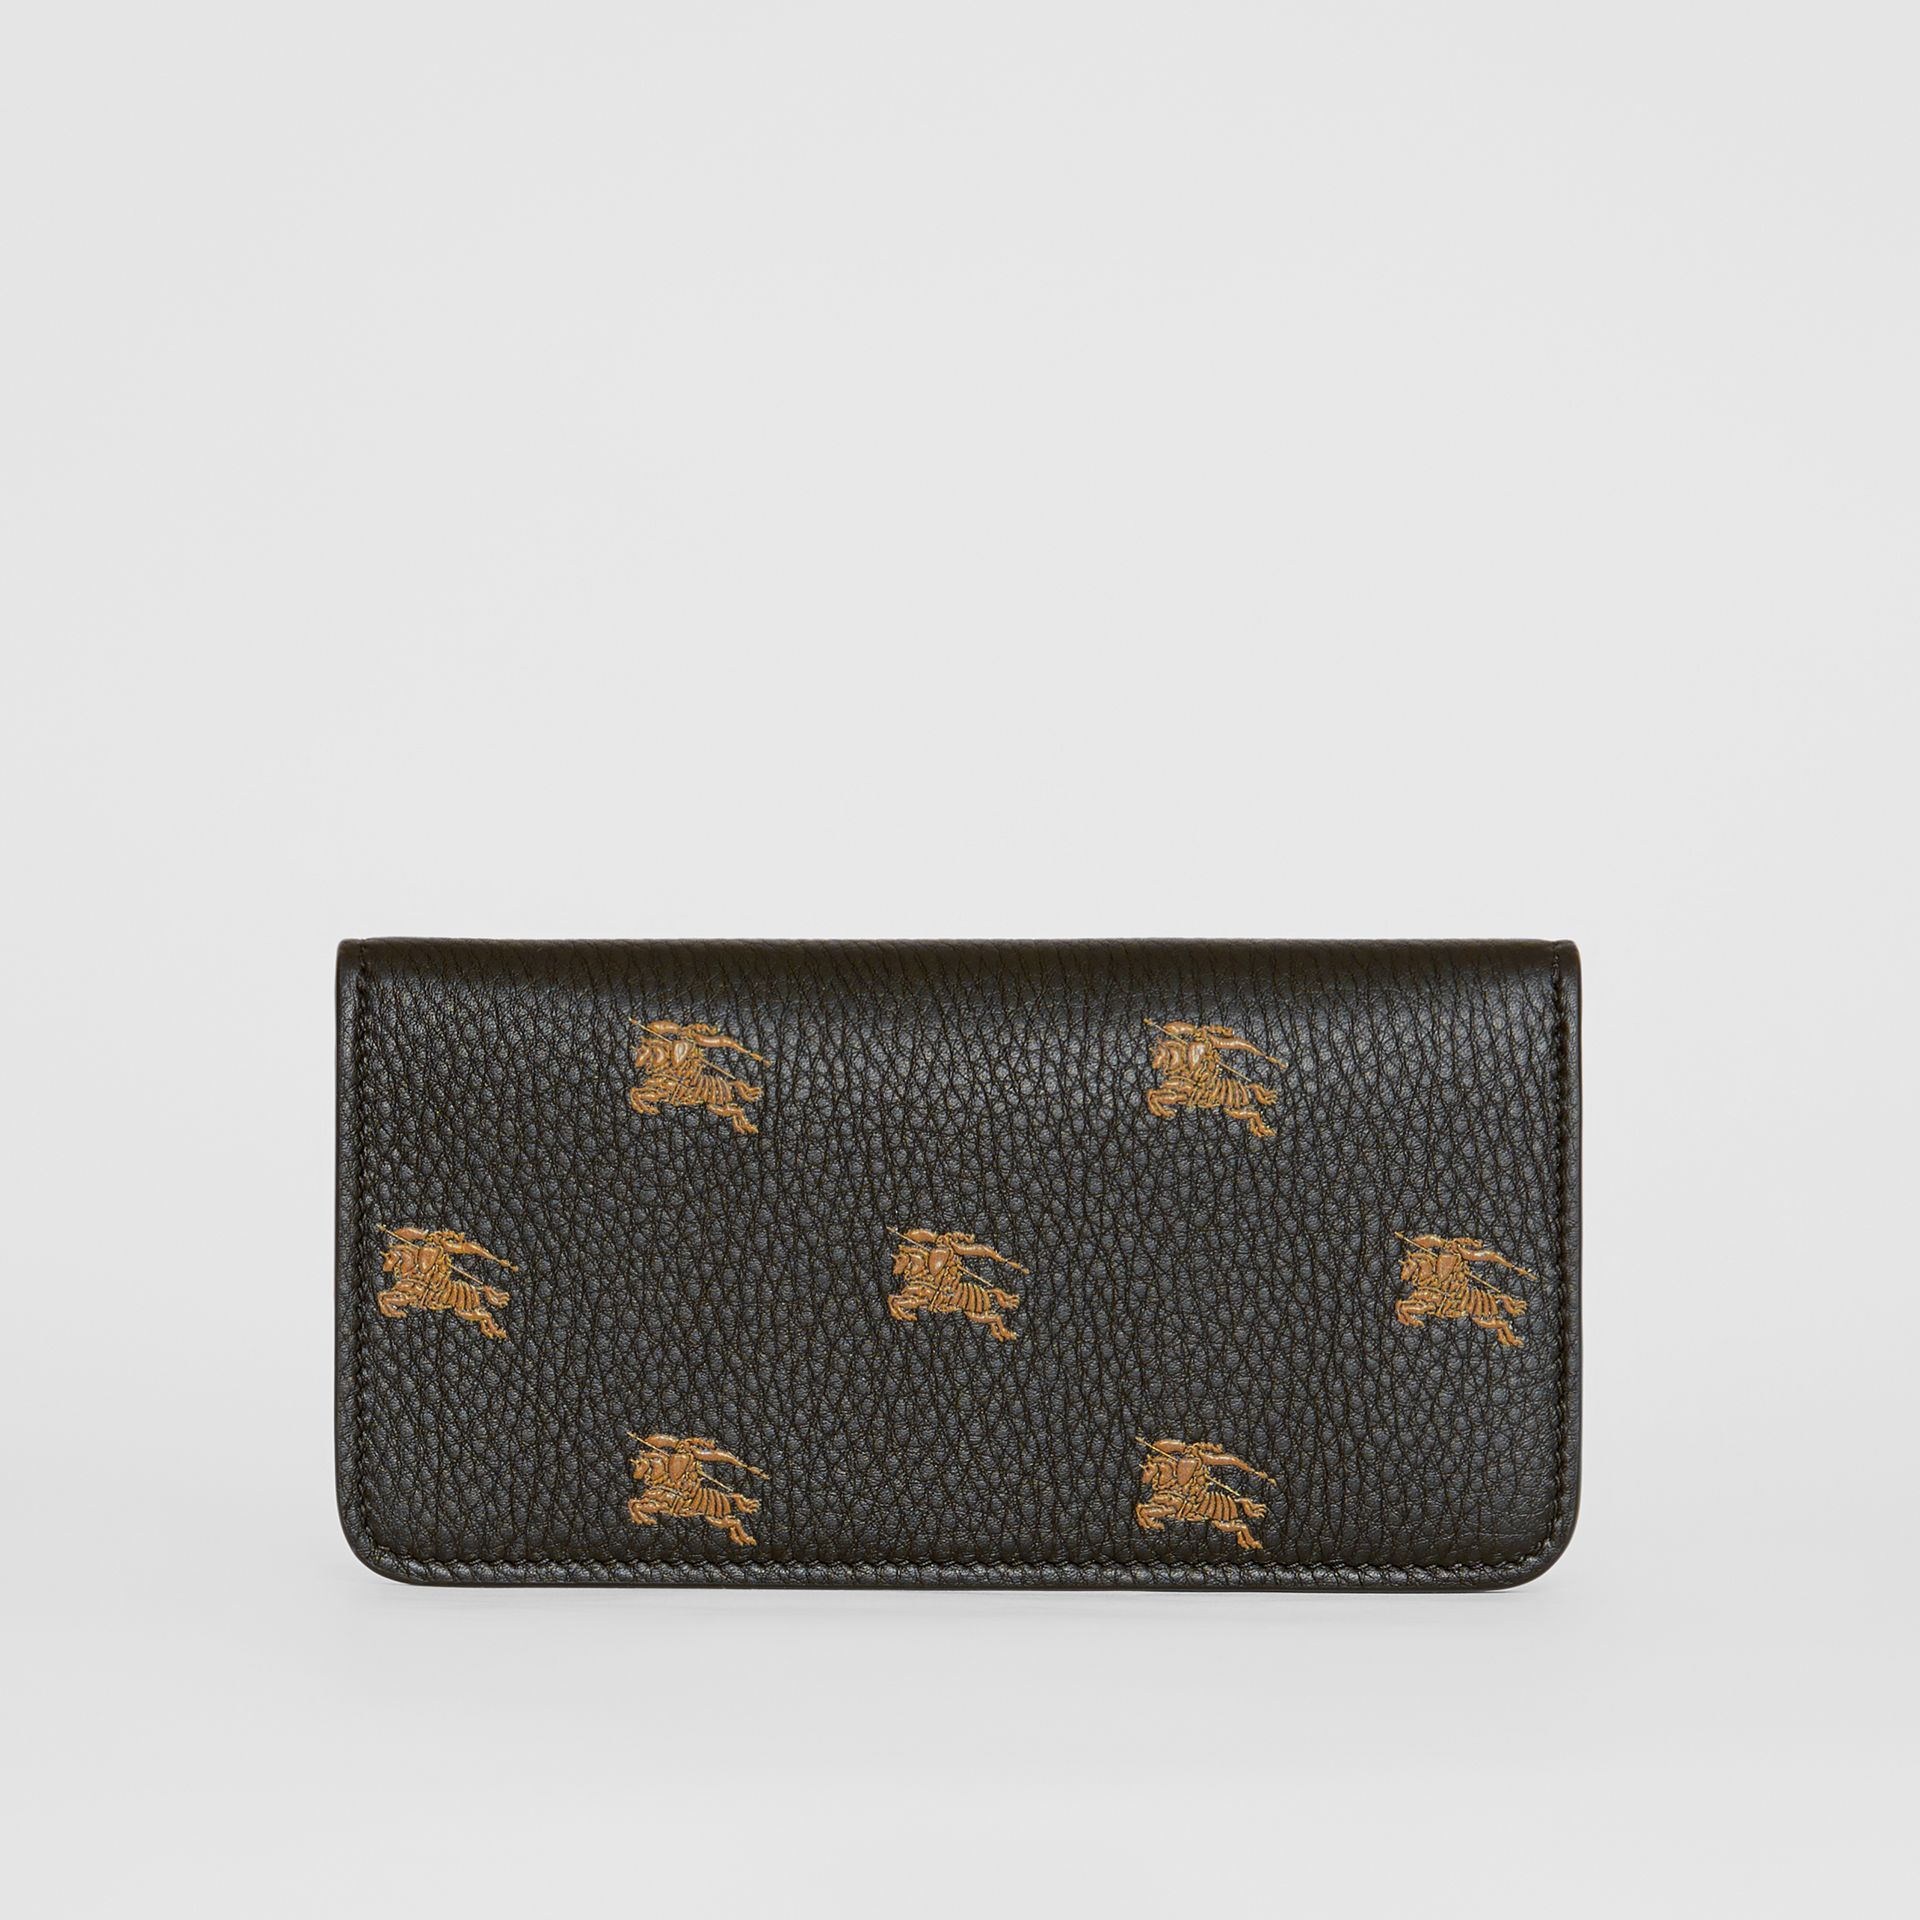 EKD Leather Phone Wallet in Black - Women | Burberry Australia - gallery image 5